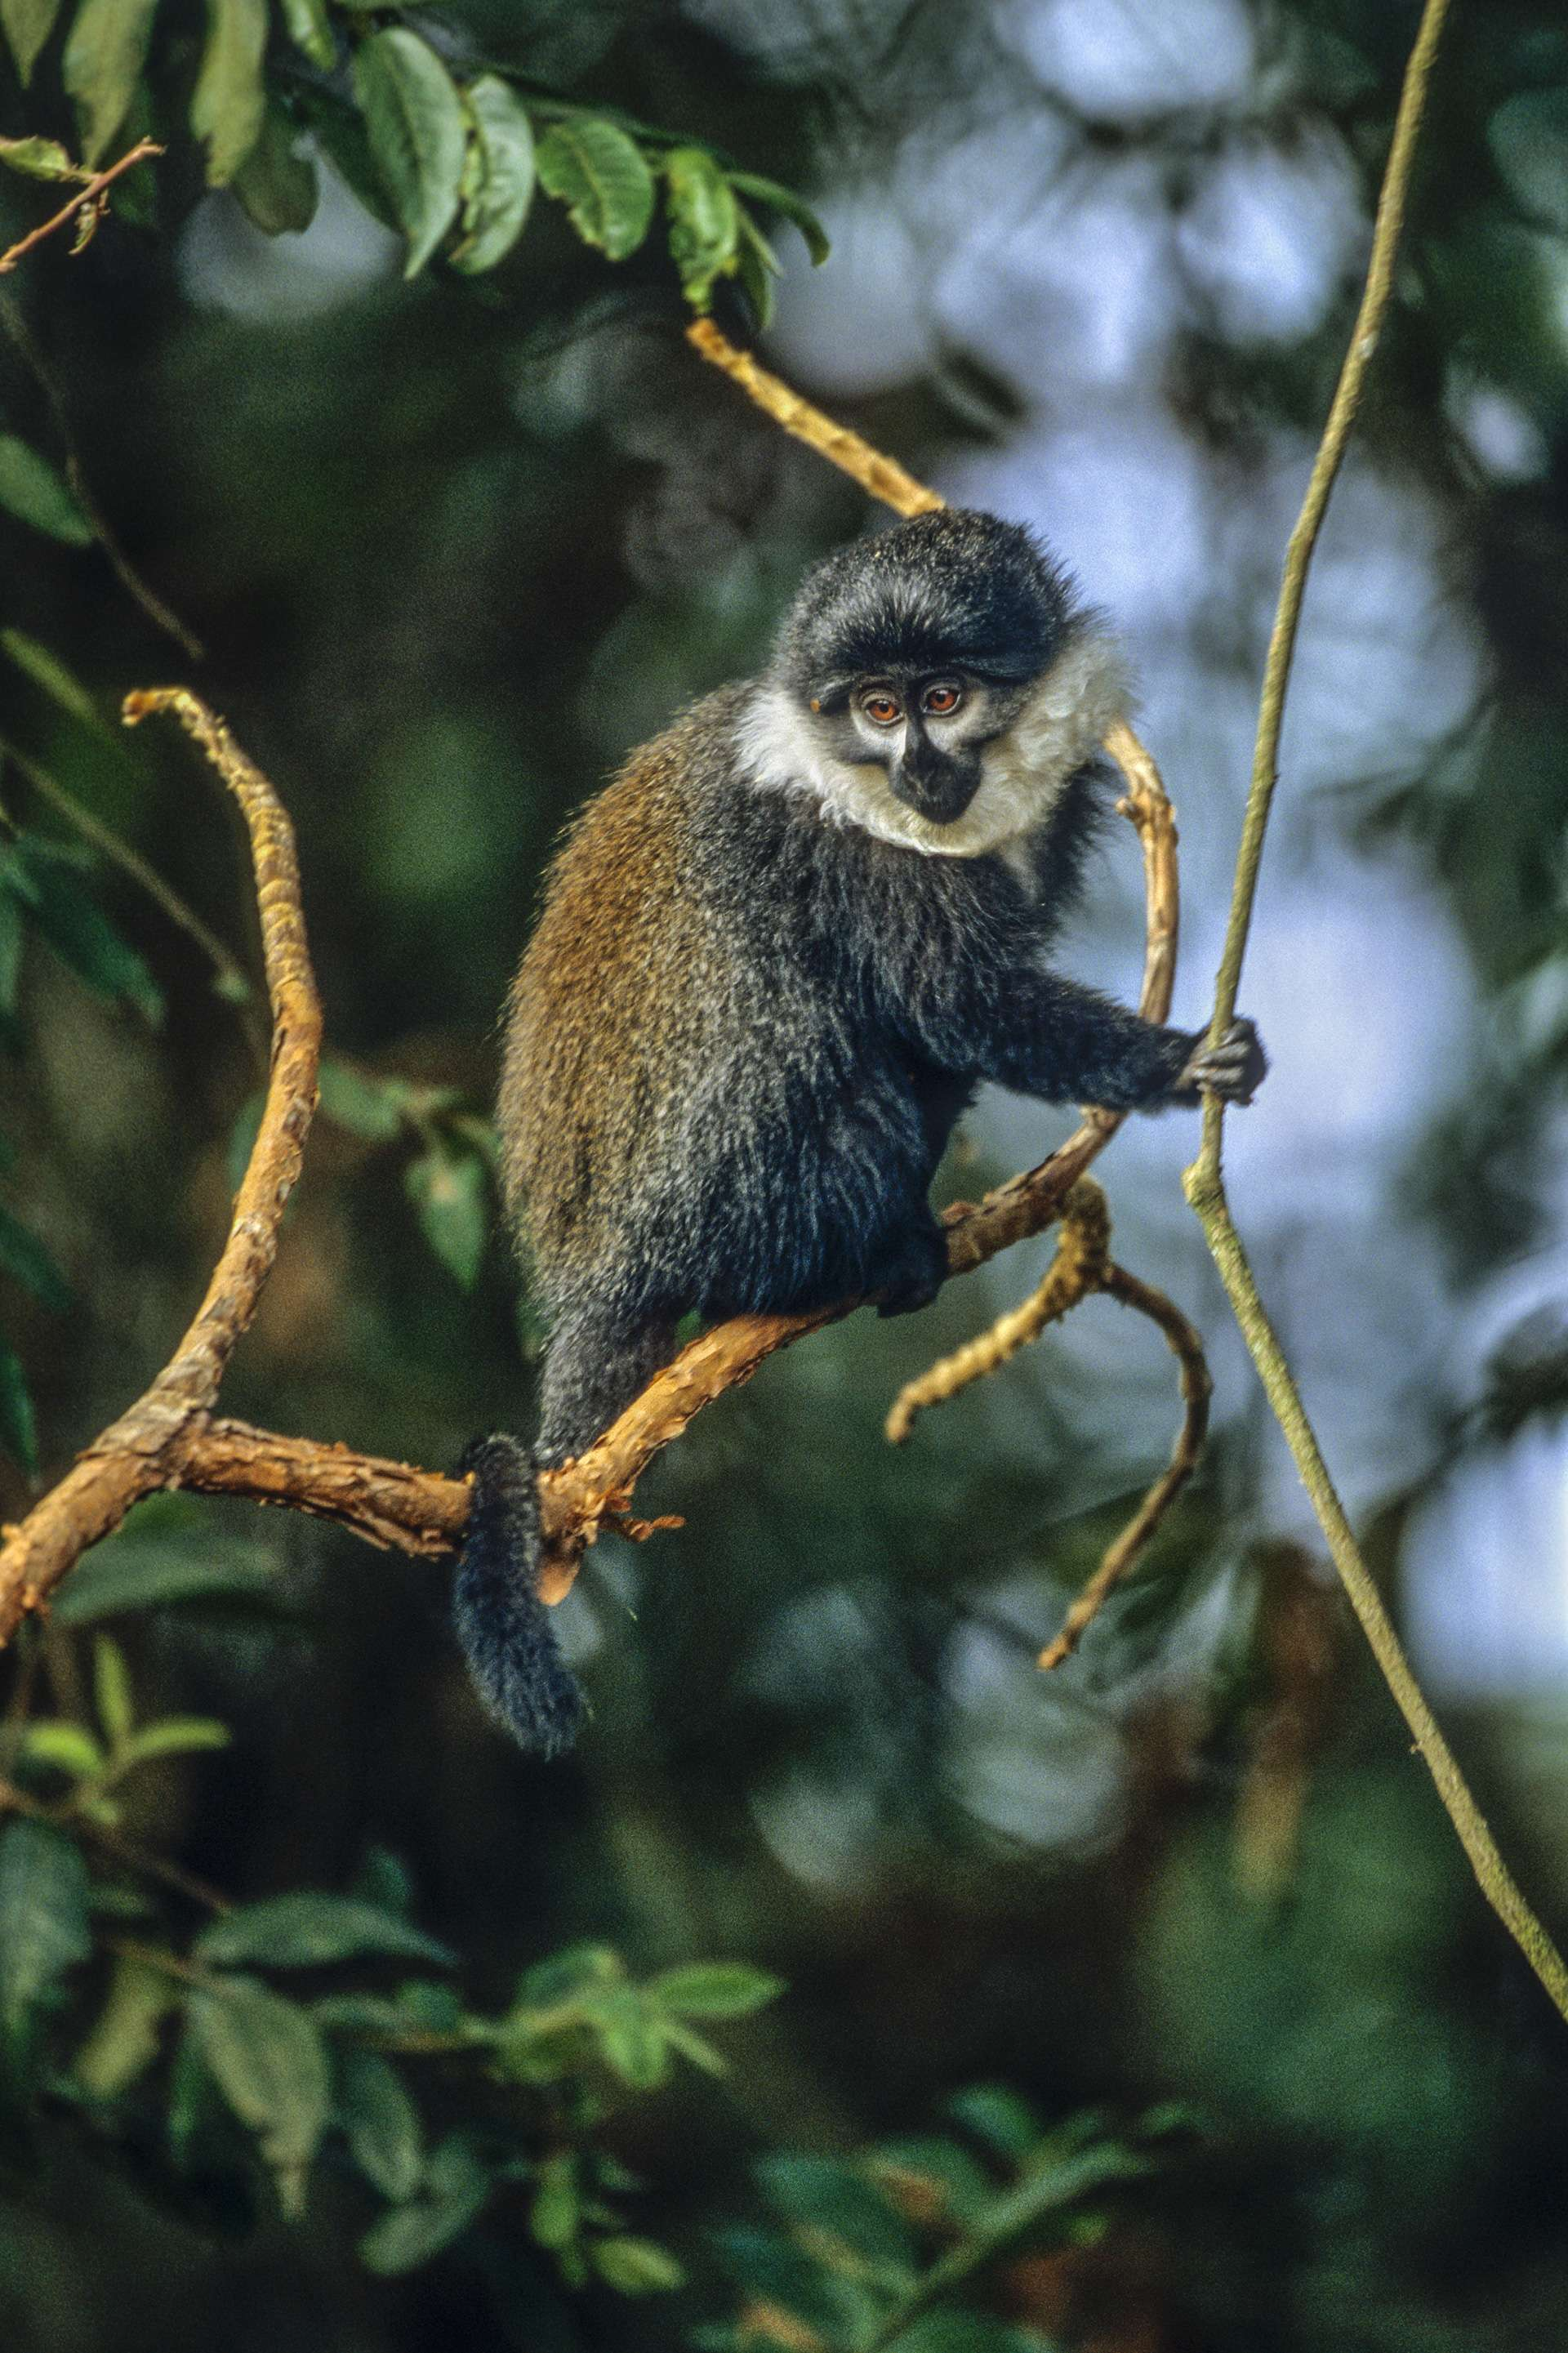 Gilles Martin's photograph of a L'Hoest's mokey from Rwanda